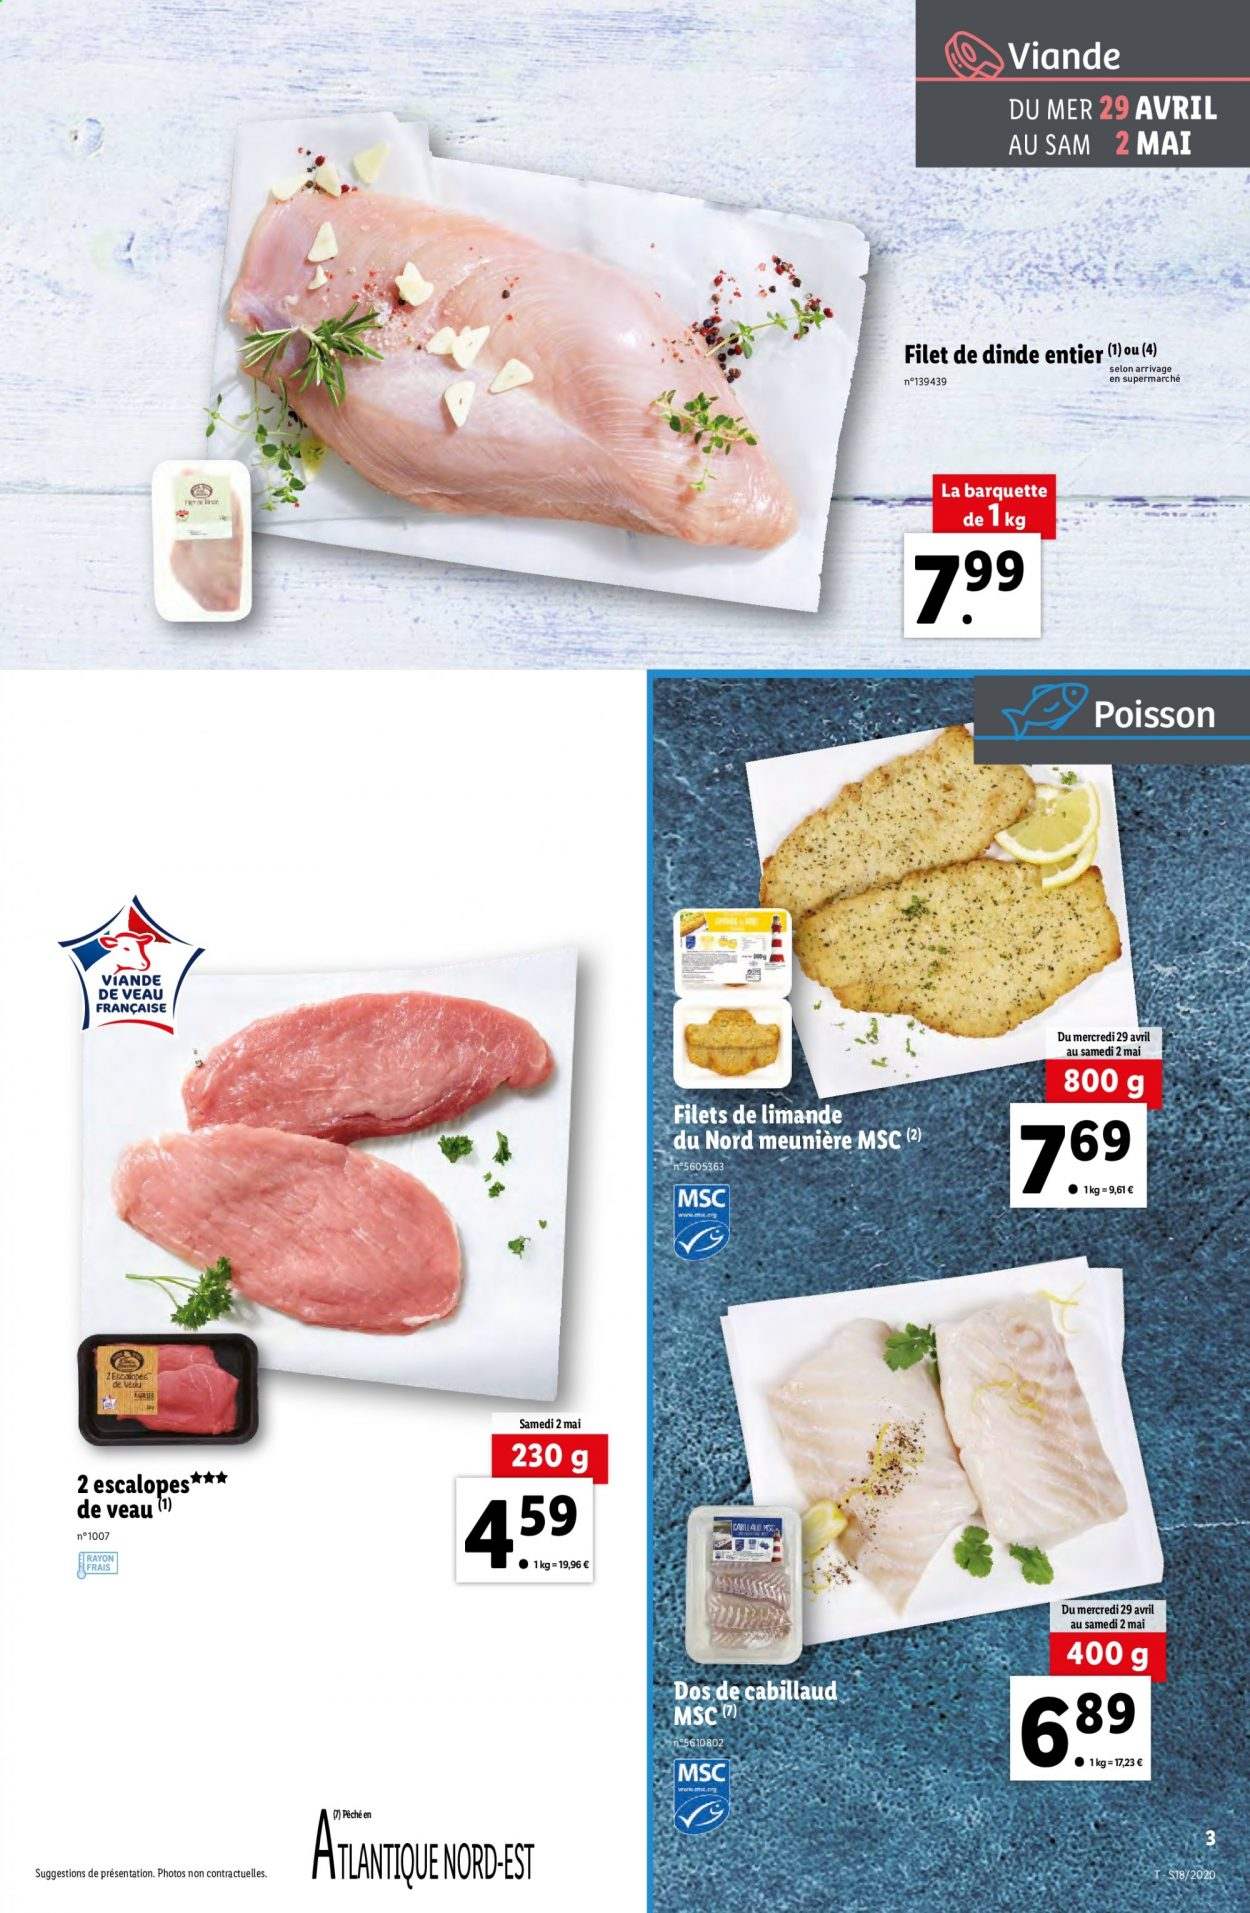 Catalogue Lidl - 29.04.2020 - 05.05.2020. Page 3.